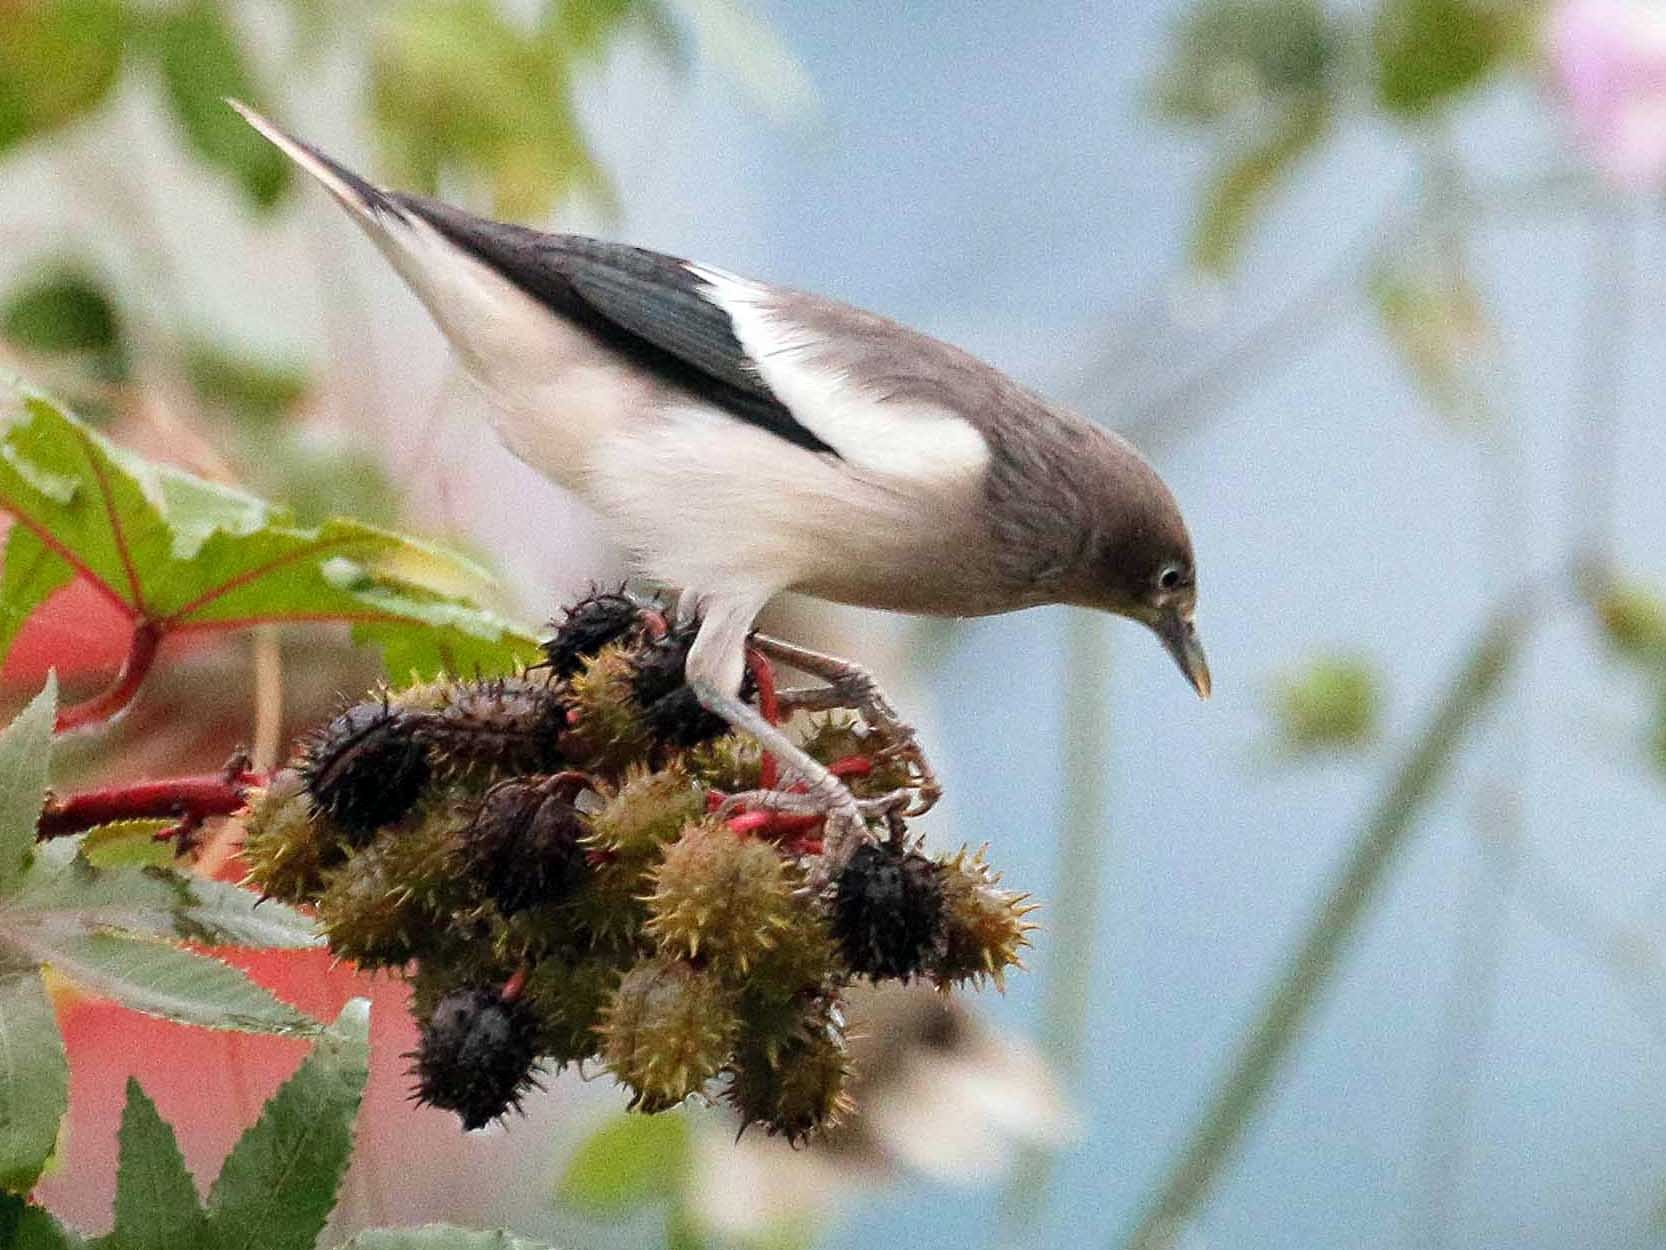 White-shouldered Starling - Neoh Hor Kee